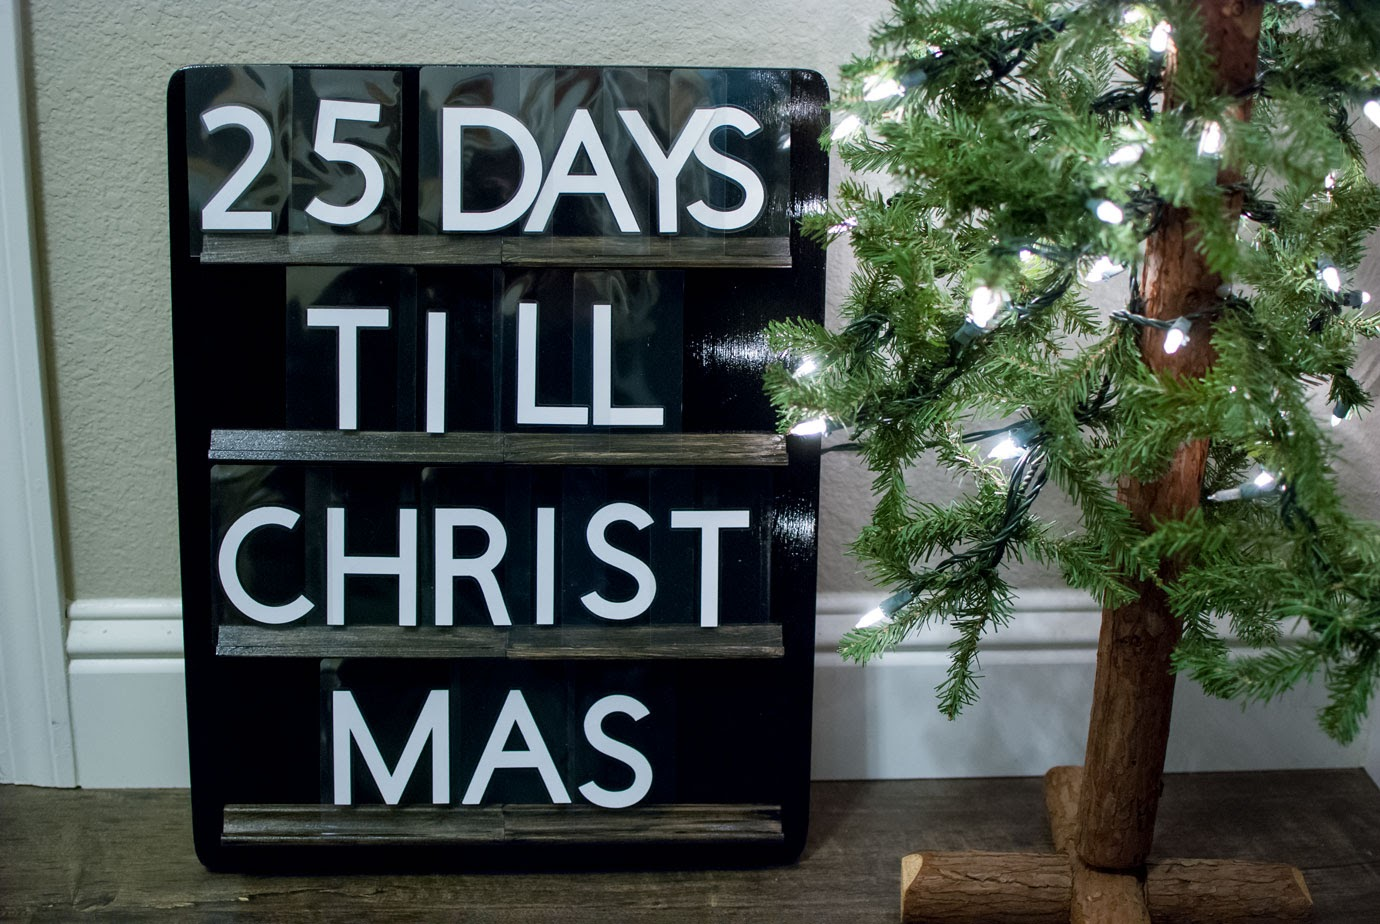 Christmas Countdown Letterboard Next to a Mini Christmas Tree